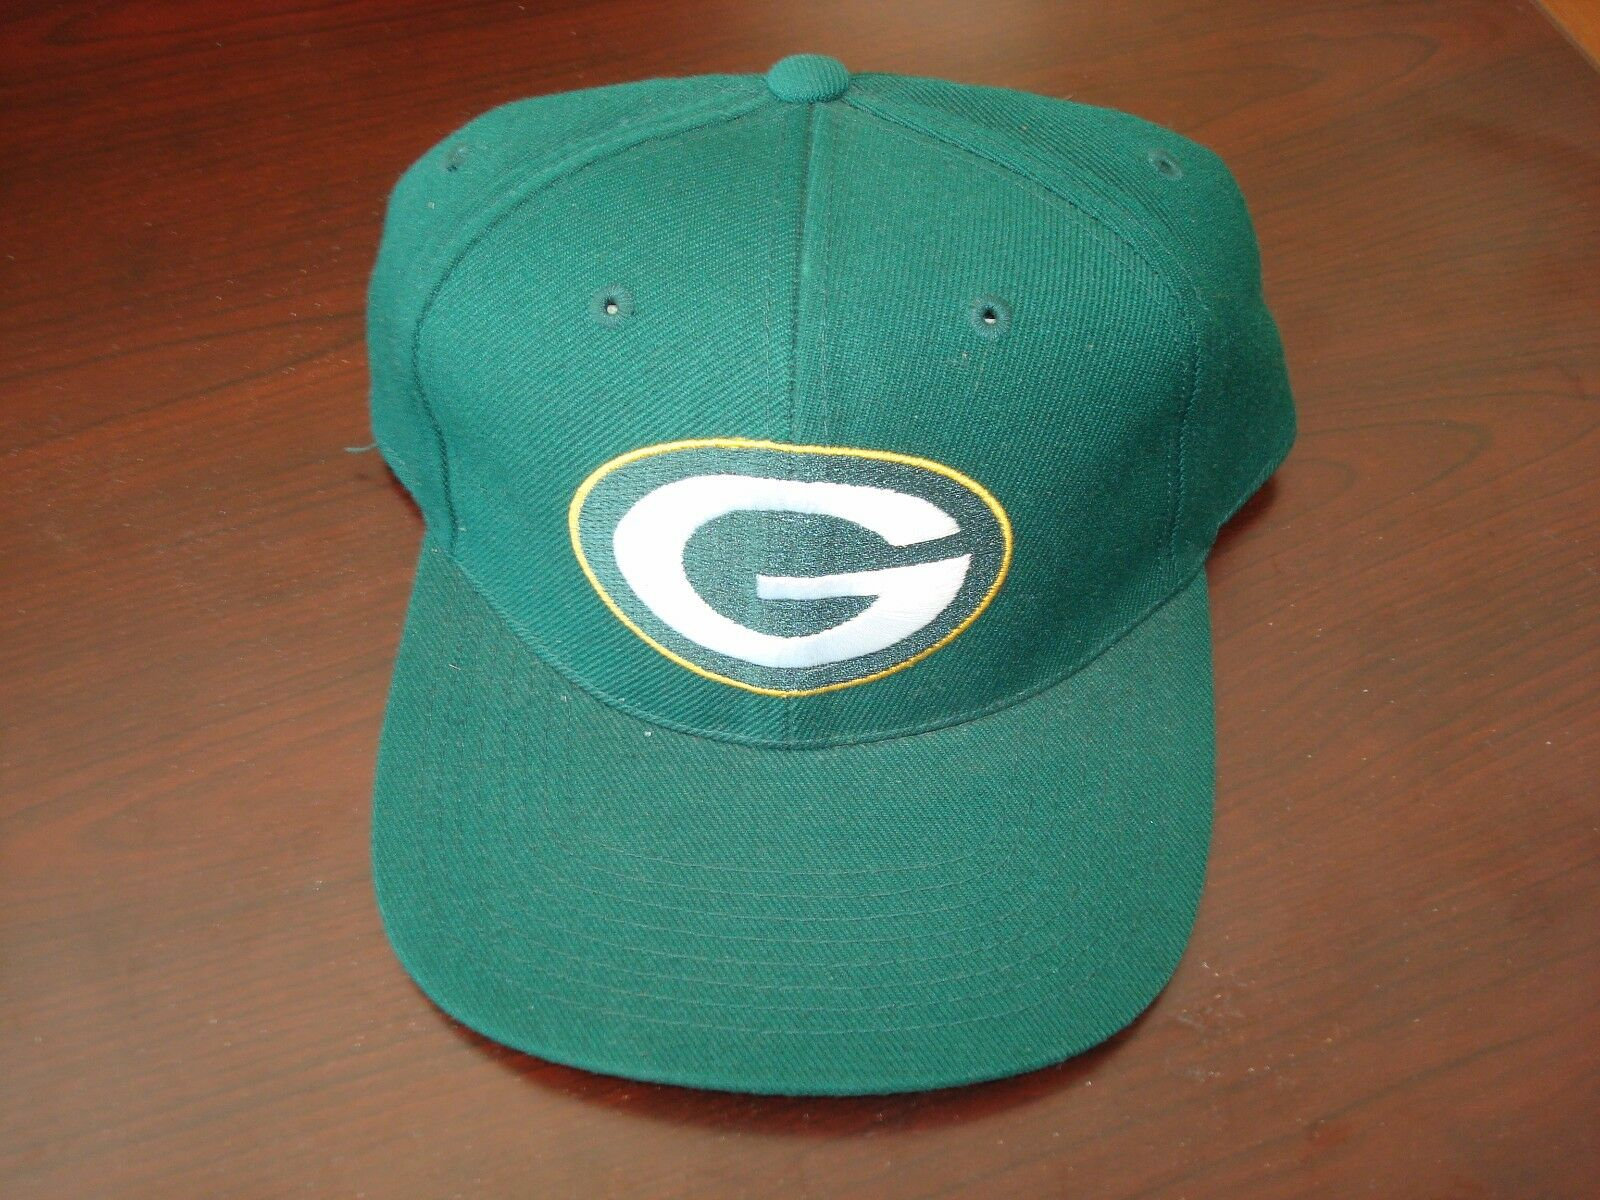 GREEN BAY PACKERS SPORTS SPECIALTIES VINTAGE SZ DEADSTOCK HAT CAP FITTED SZ VINTAGE 7 1/4 cca825